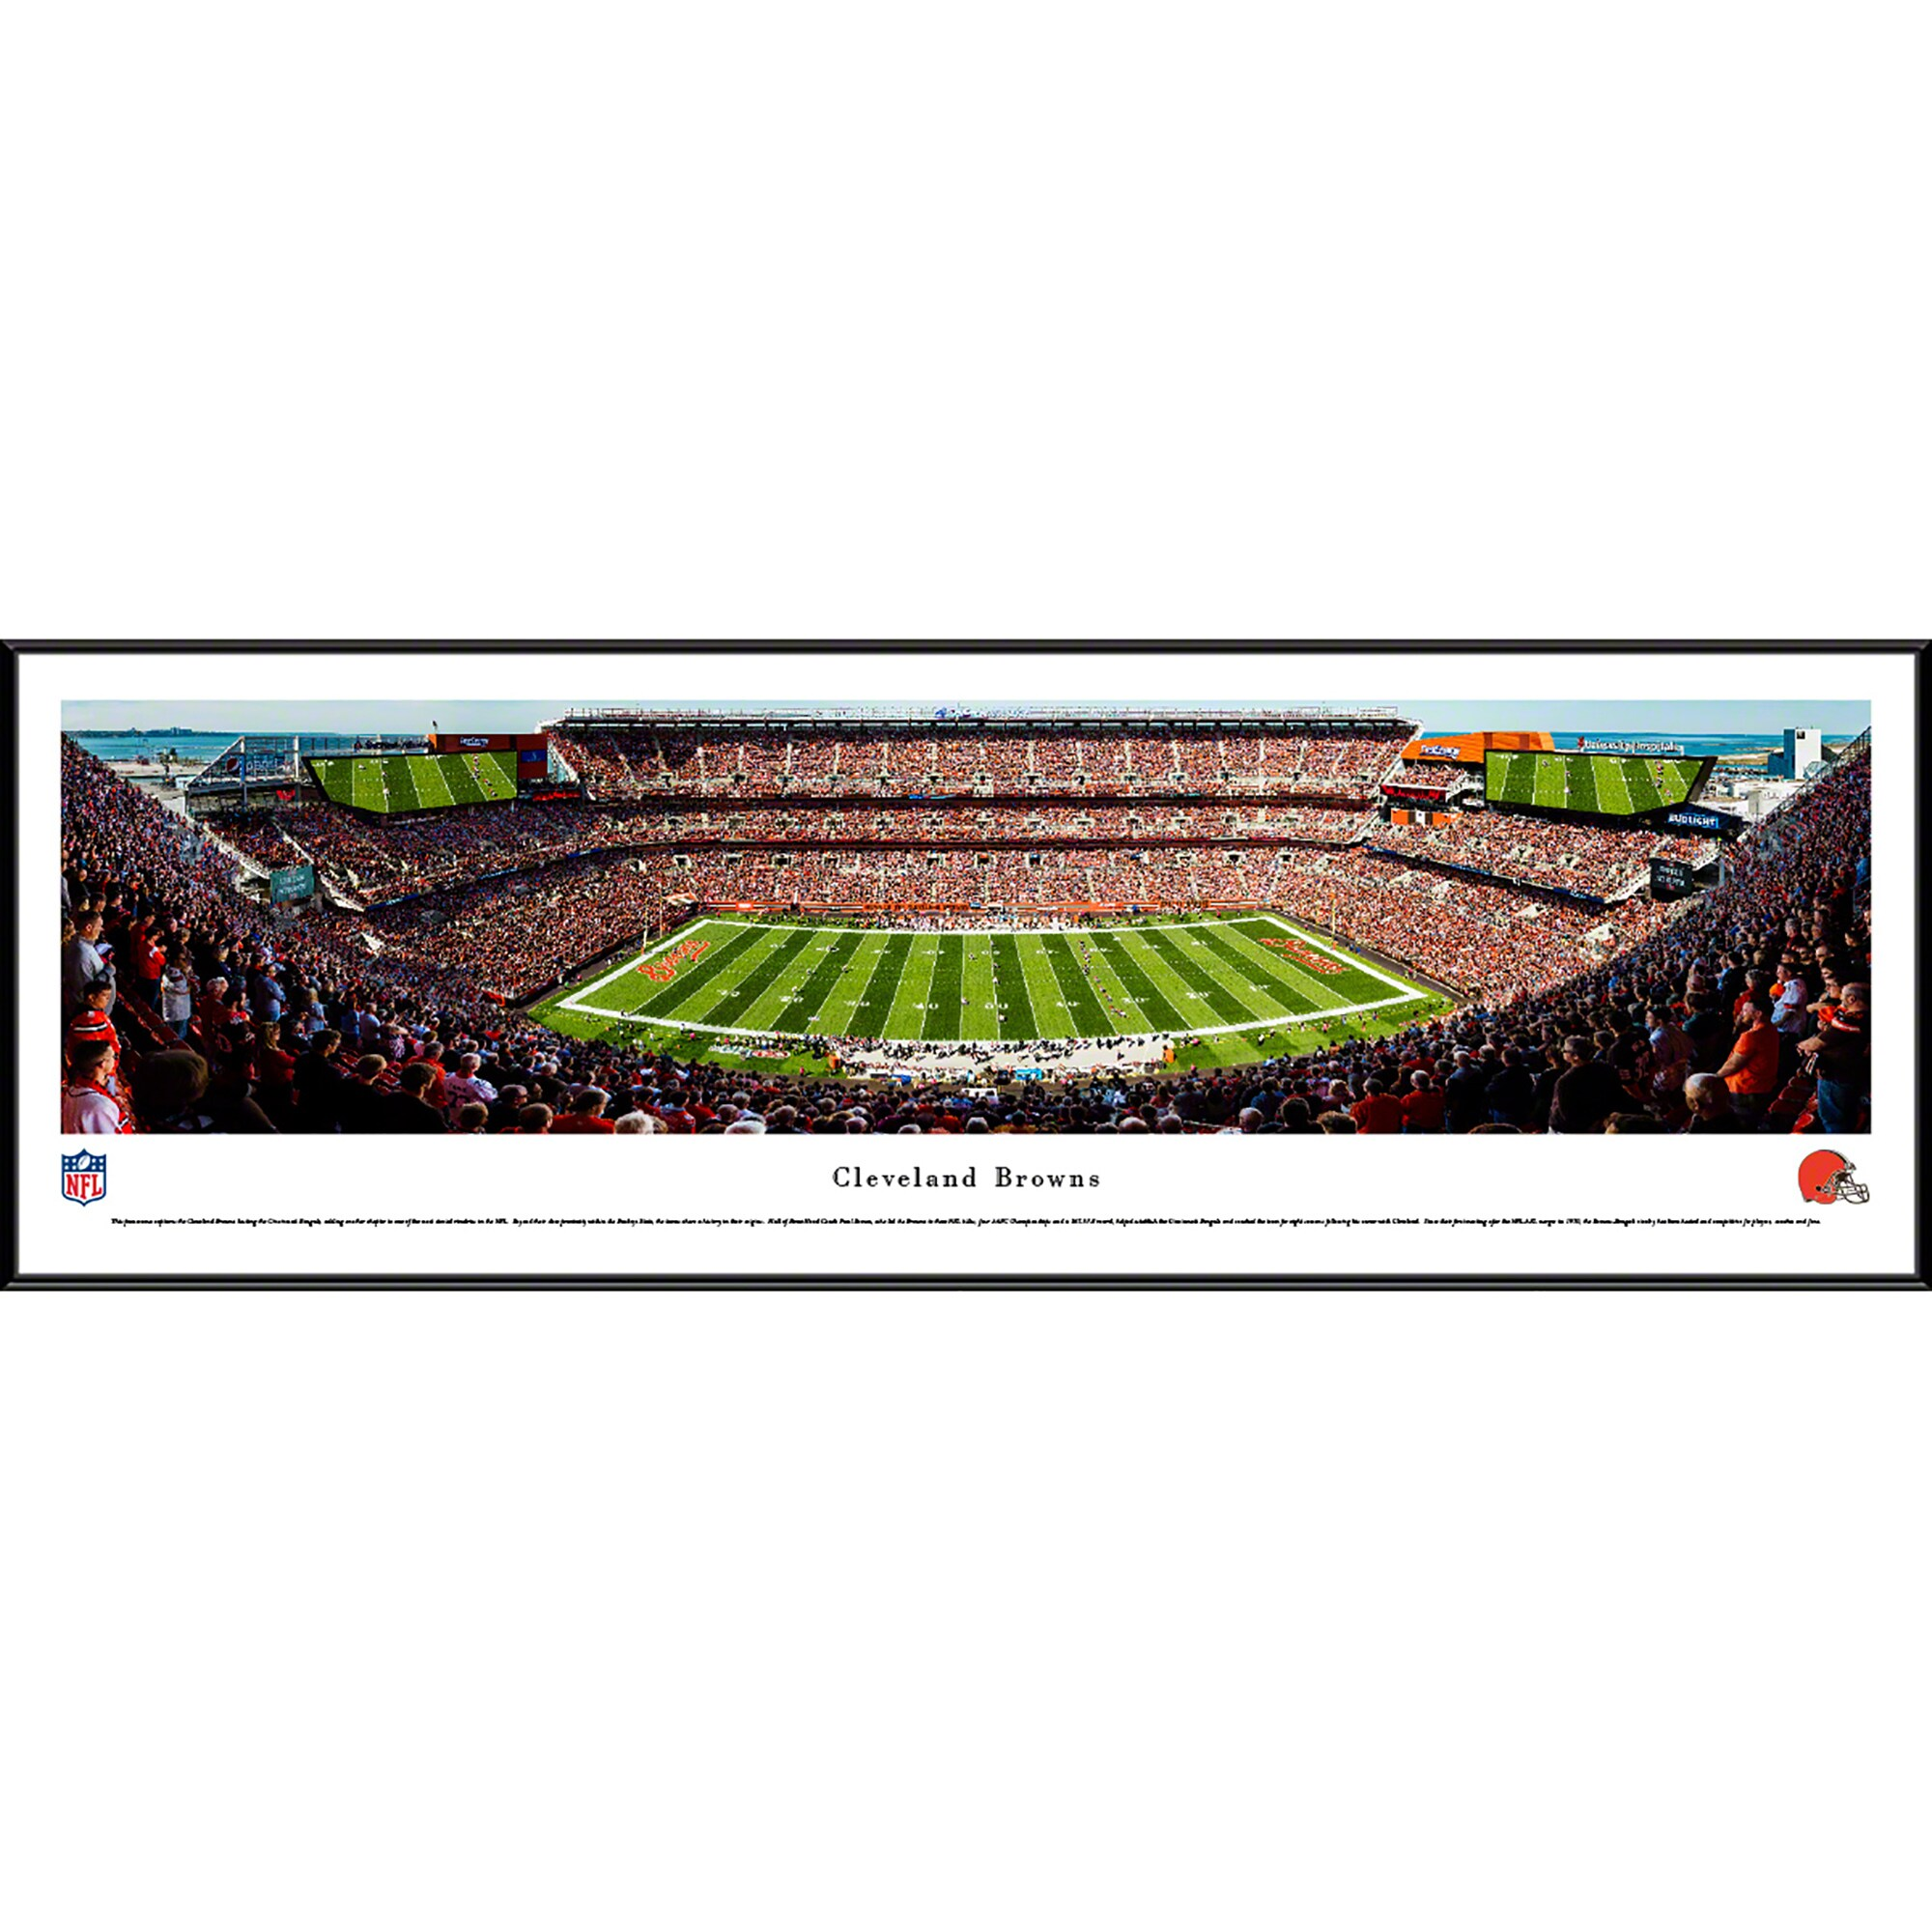 "Cleveland Browns 40.25"" x 13.75"" 50-Yard Line Standard Framed Panoramic"